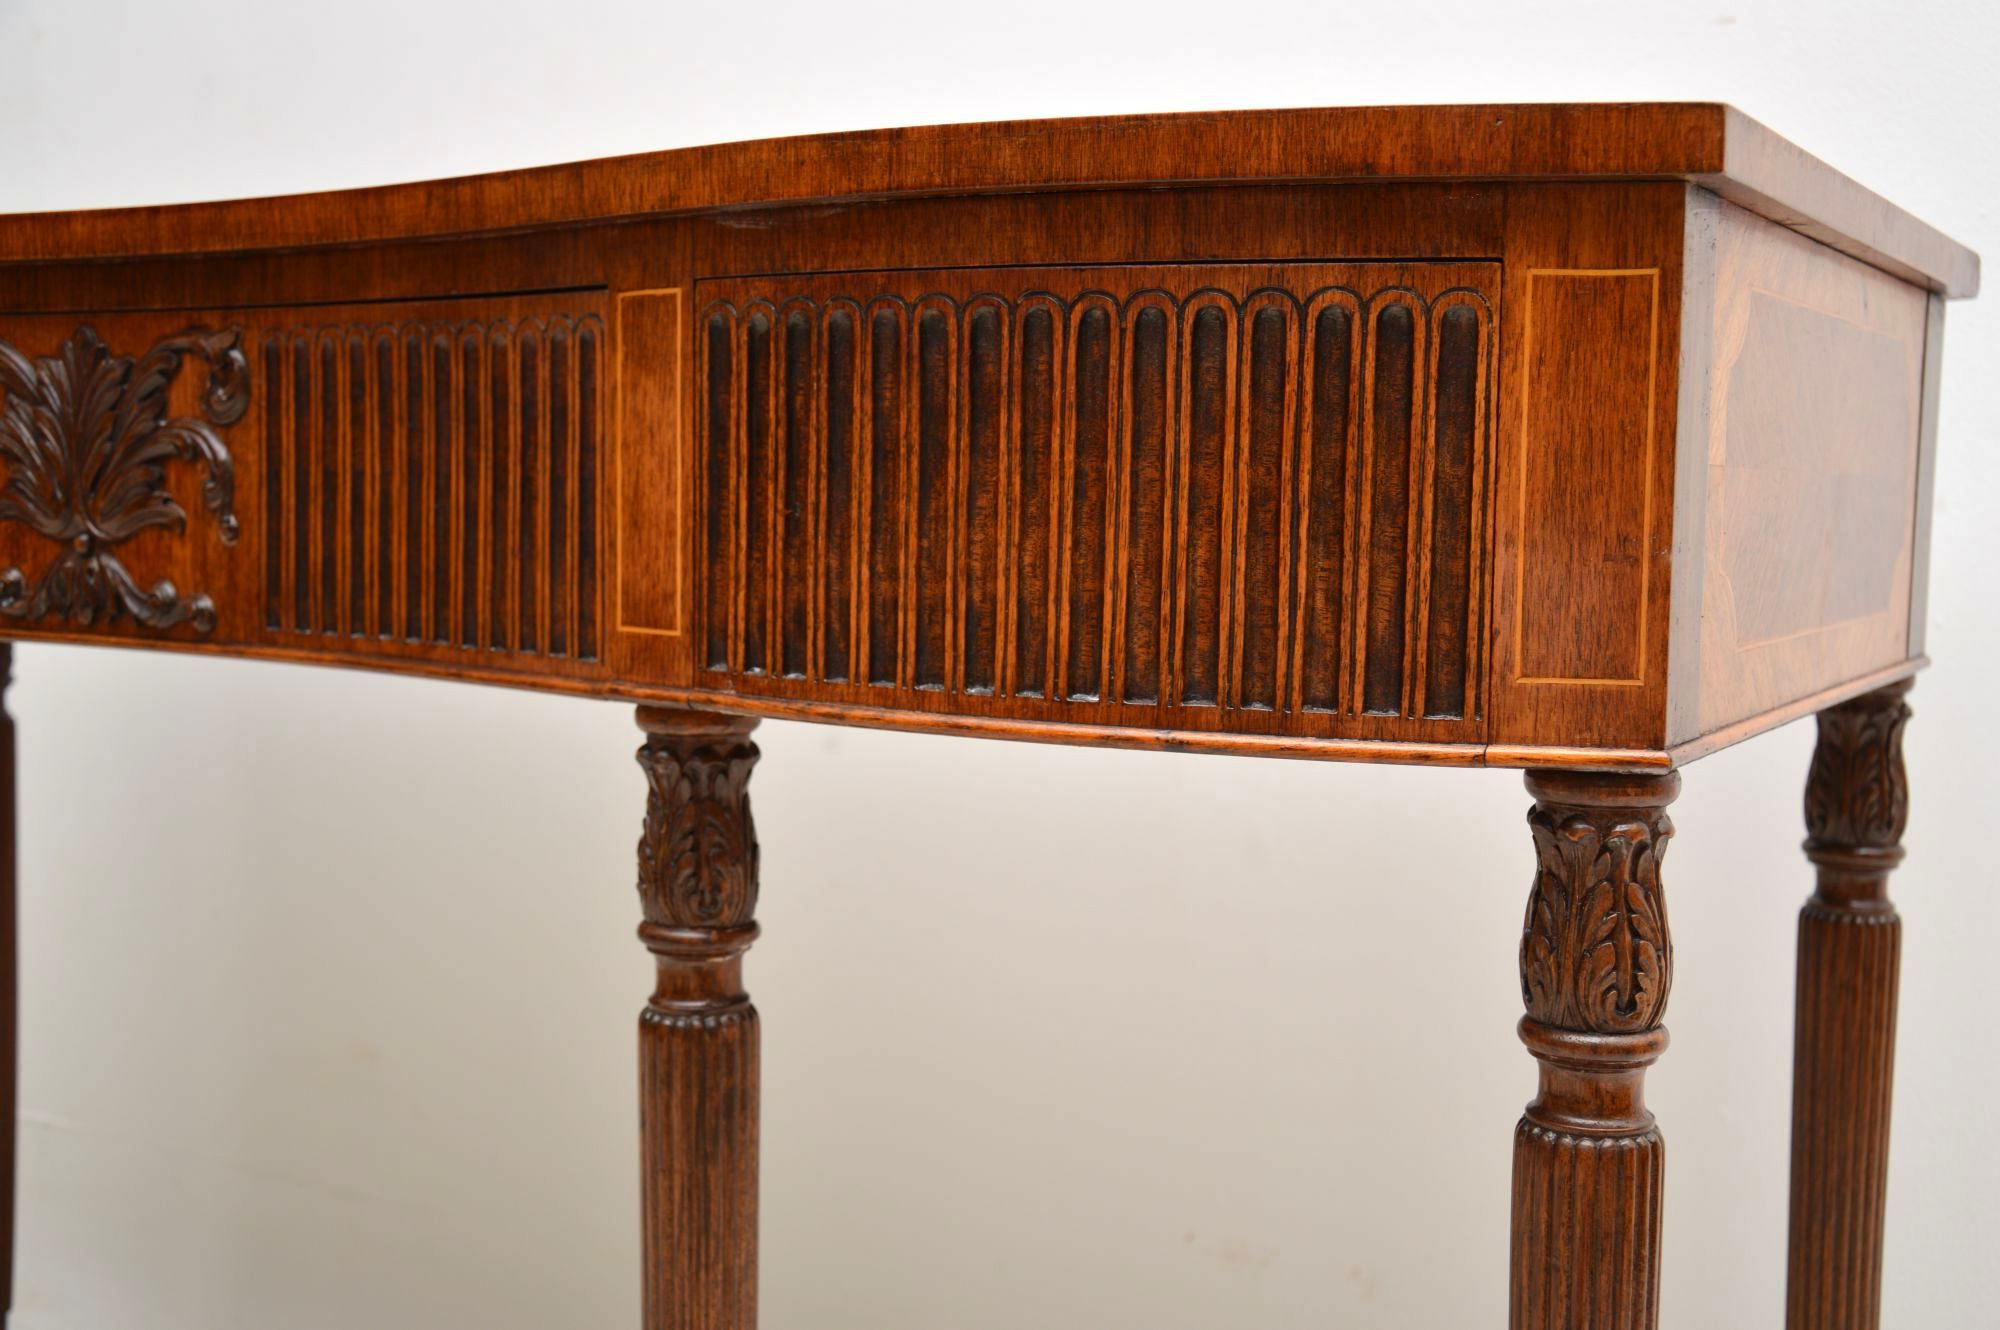 Antique Inlaid Mahogany & Kingwood Server Console Table | Marylebone With Orange Inlay Console Tables (Gallery 13 of 20)